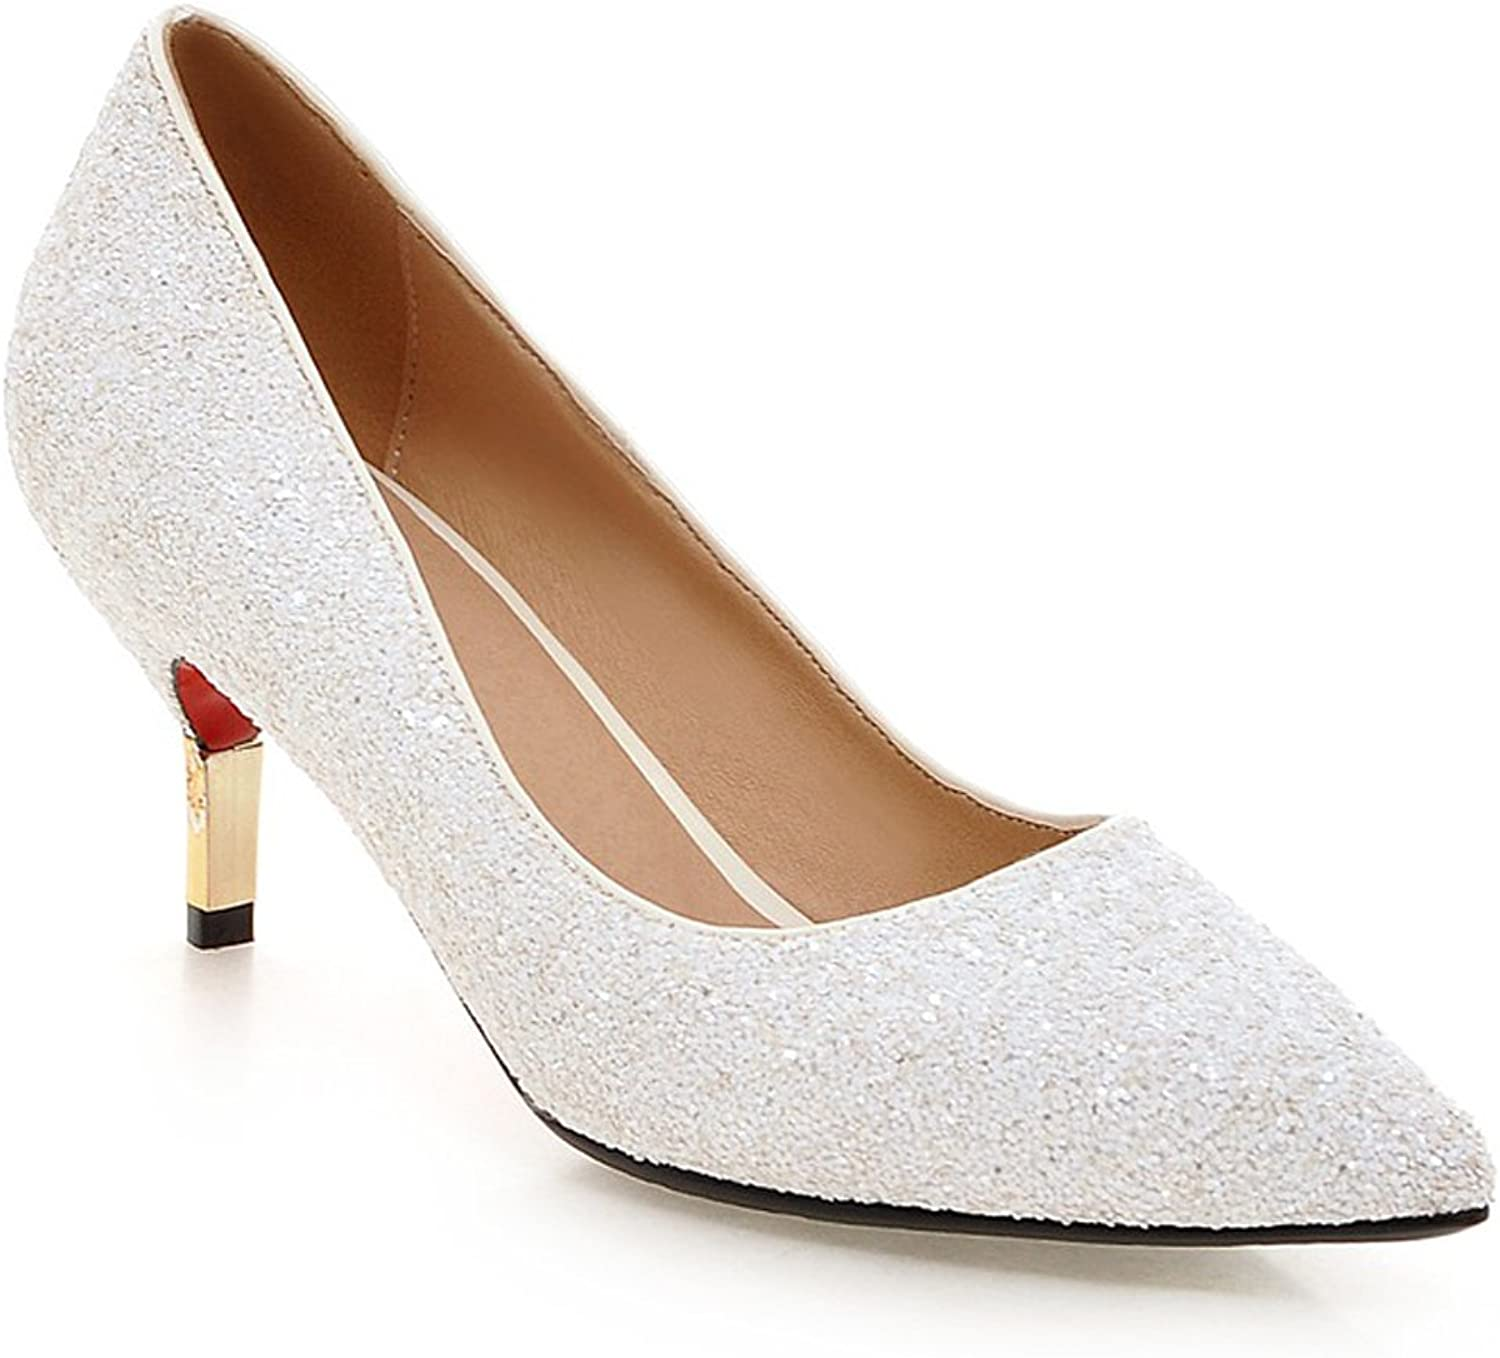 MINIVOG Women's Pointed Toe Sequins High Heel Pump shoes